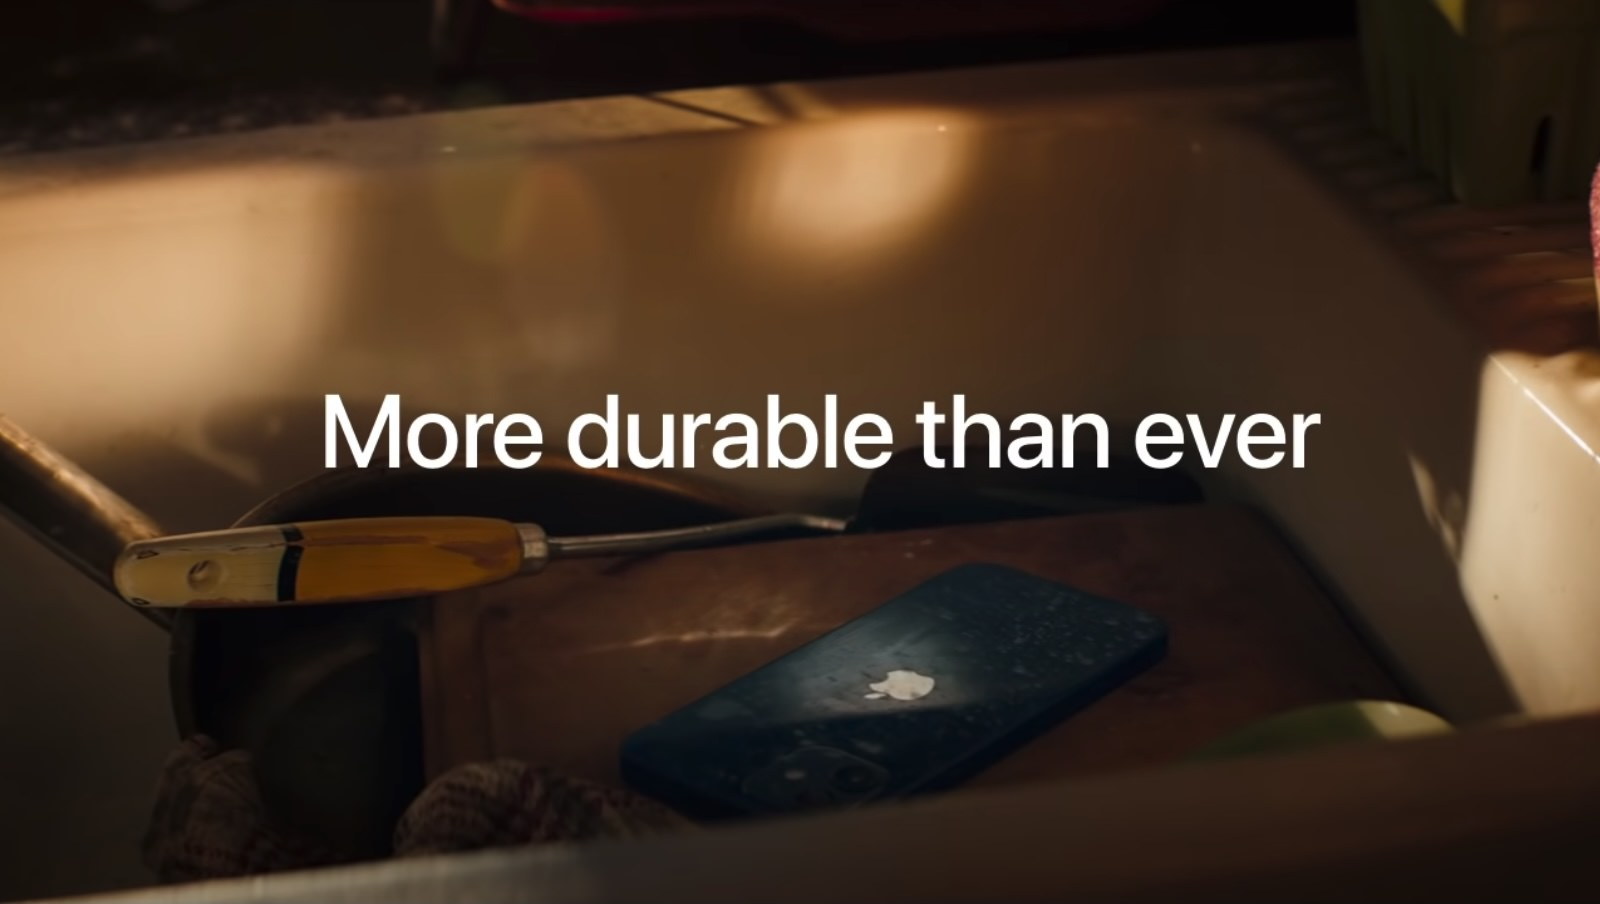 Iphone12 cook more durable than ever